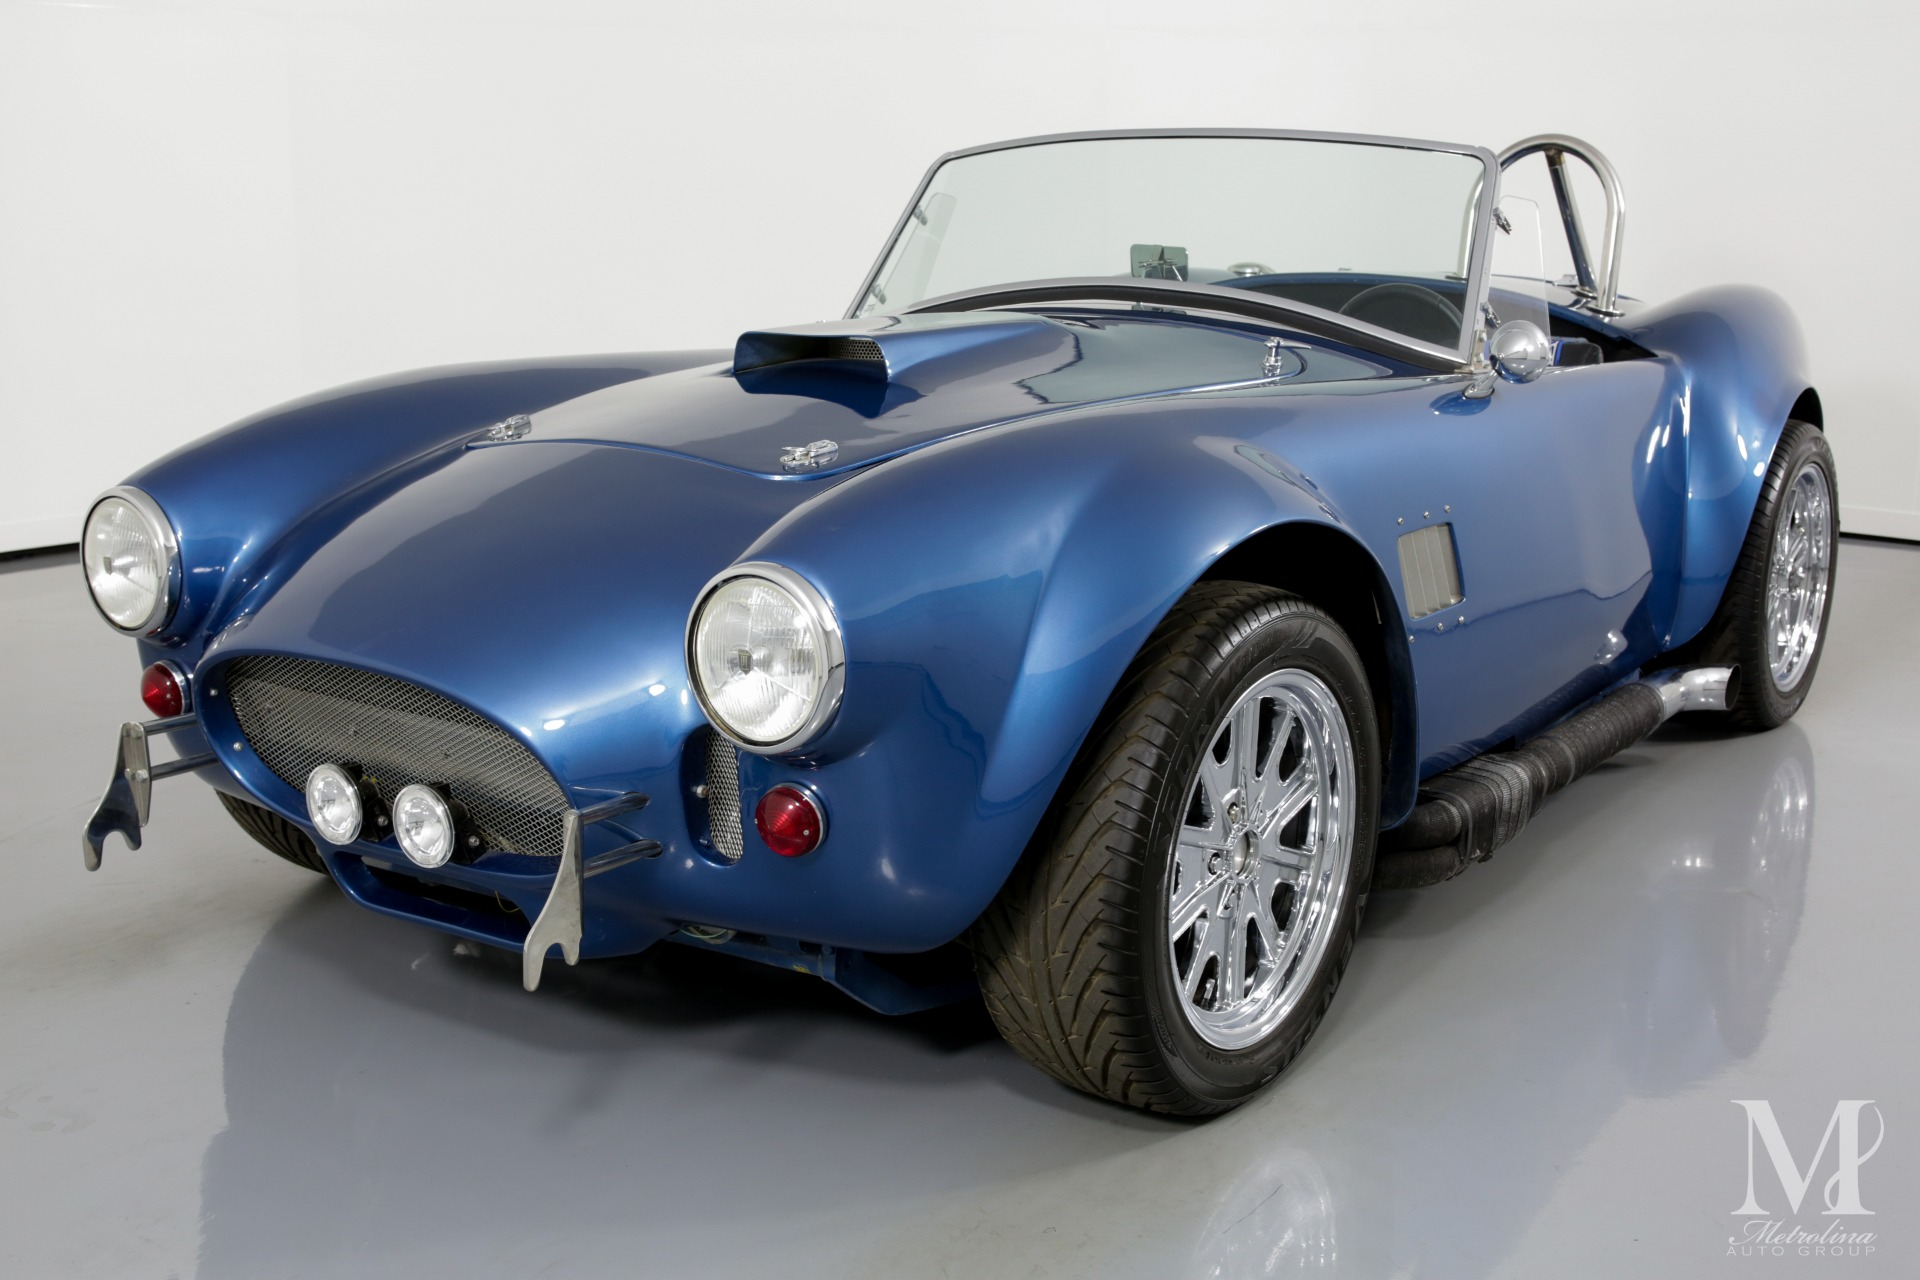 Used 1965 Shelby Cobra KIT CAR for sale $37,996 at Metrolina Auto Group in Charlotte NC 28217 - 4